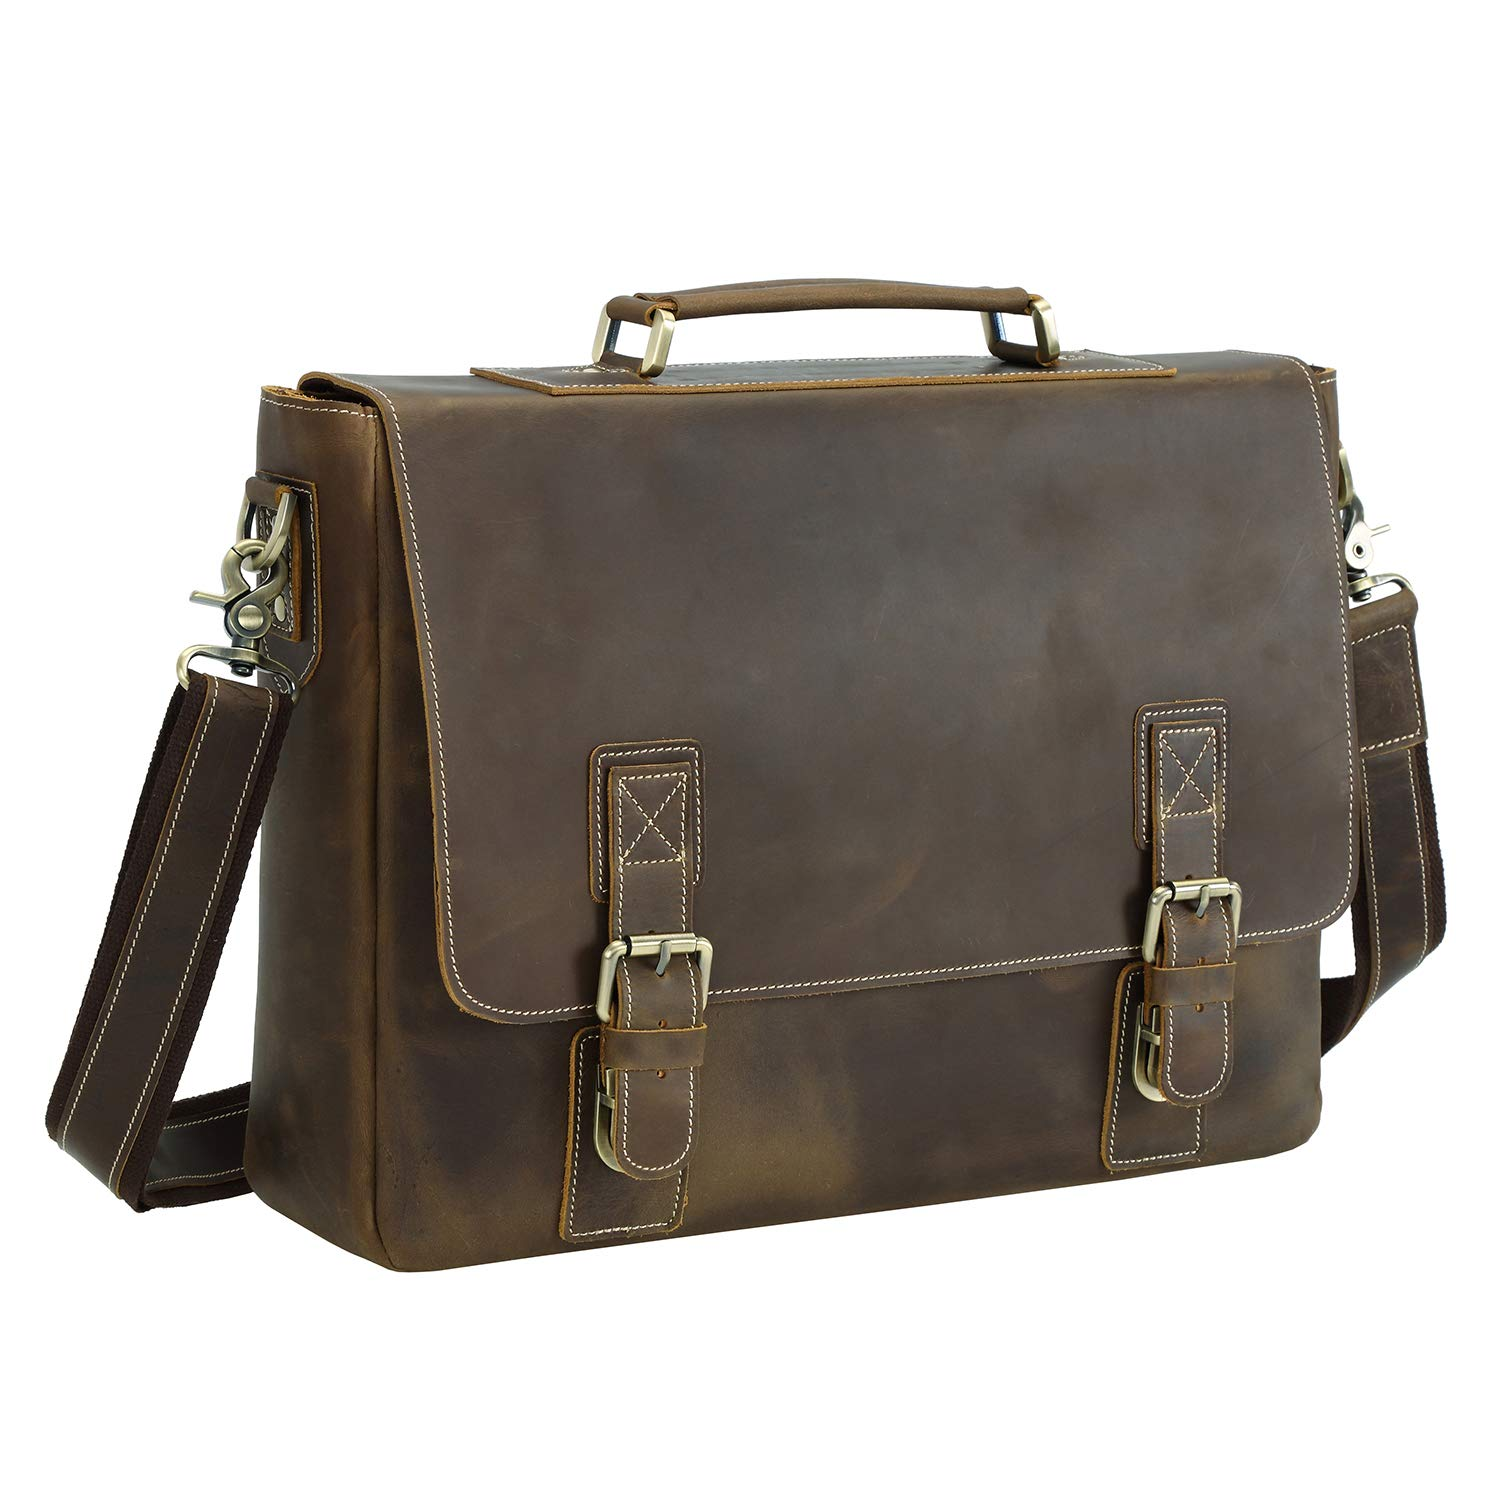 Texbo Men's 16 Inch Full Grain Cowhide Leather Laptop Briefcase Messenger Bag Tote by Texbo (Image #1)